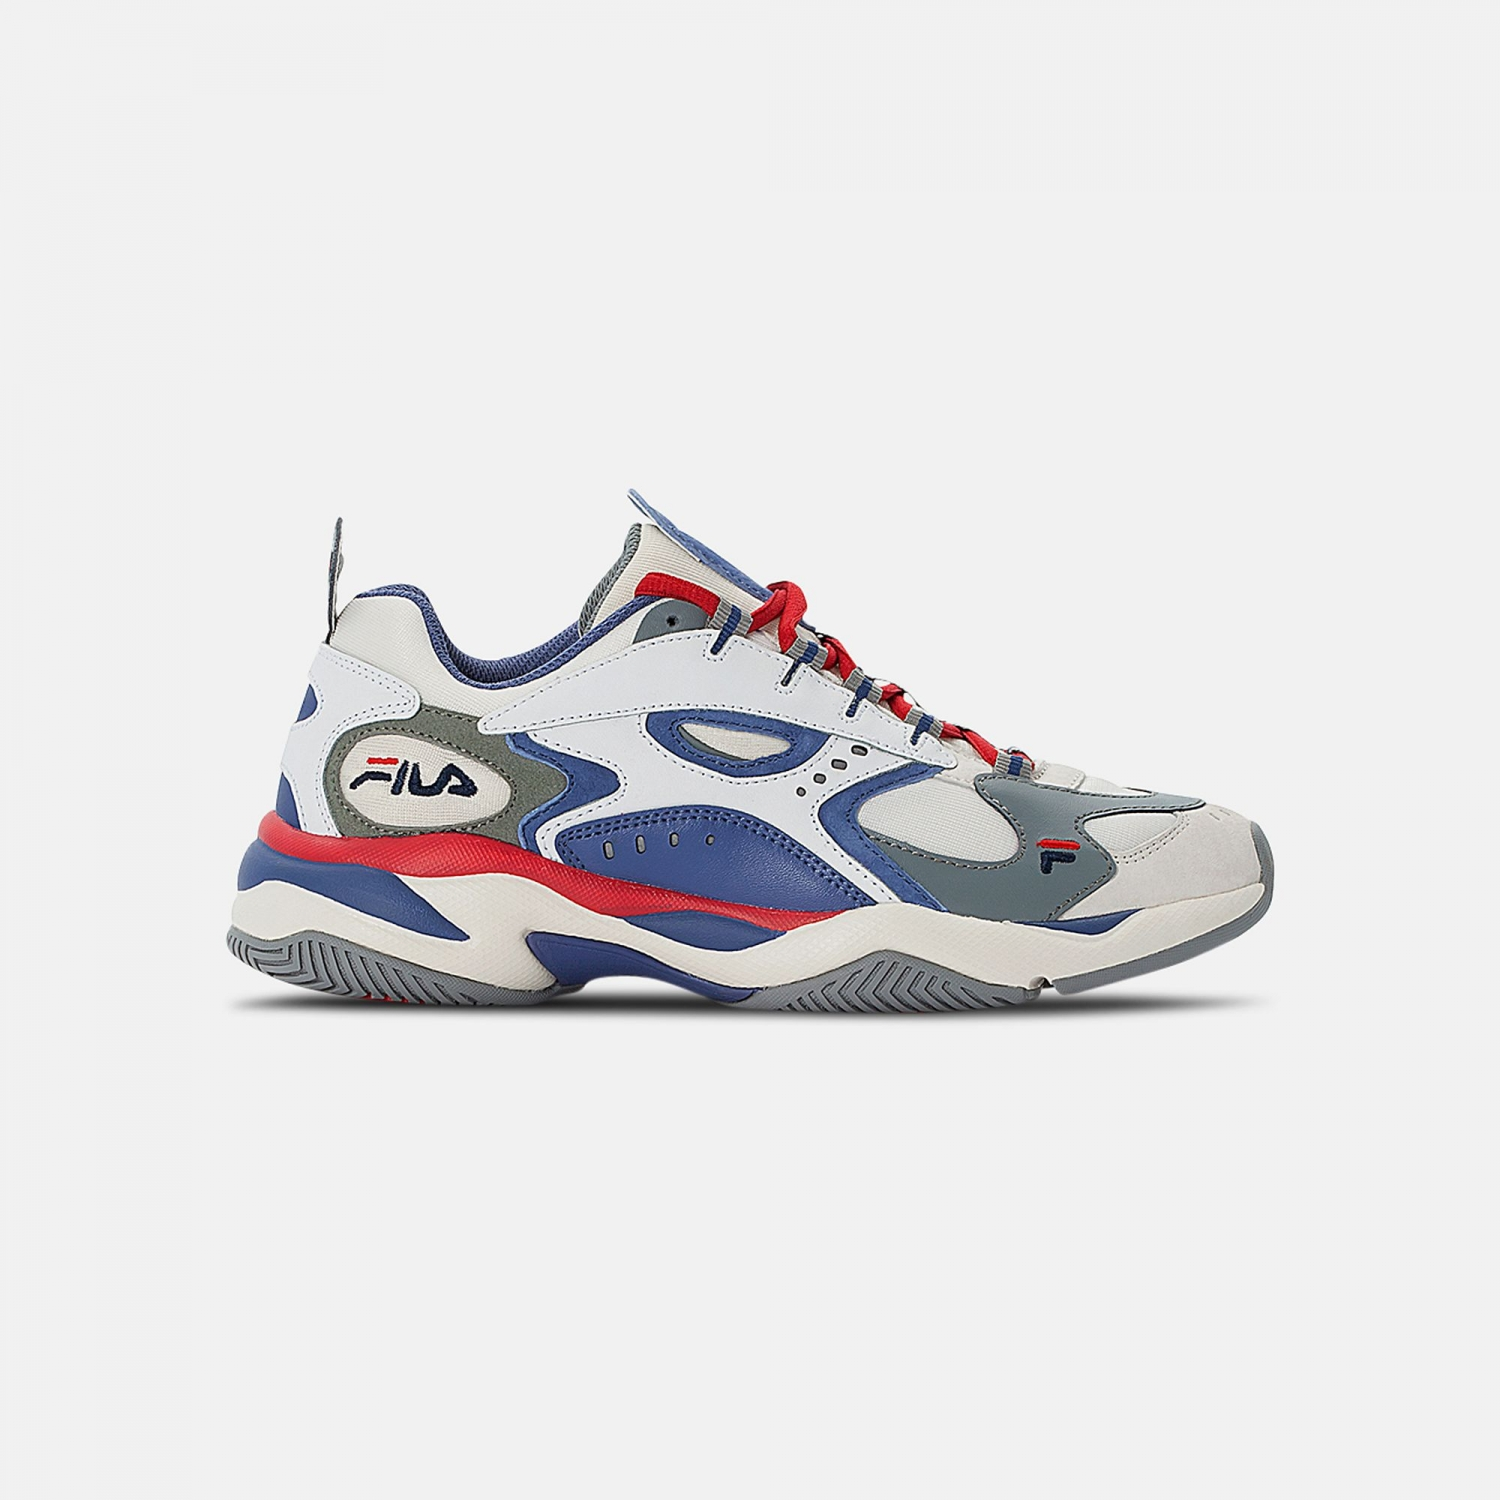 Fila Boveasorus Wmn grey-blue-red Bild 1